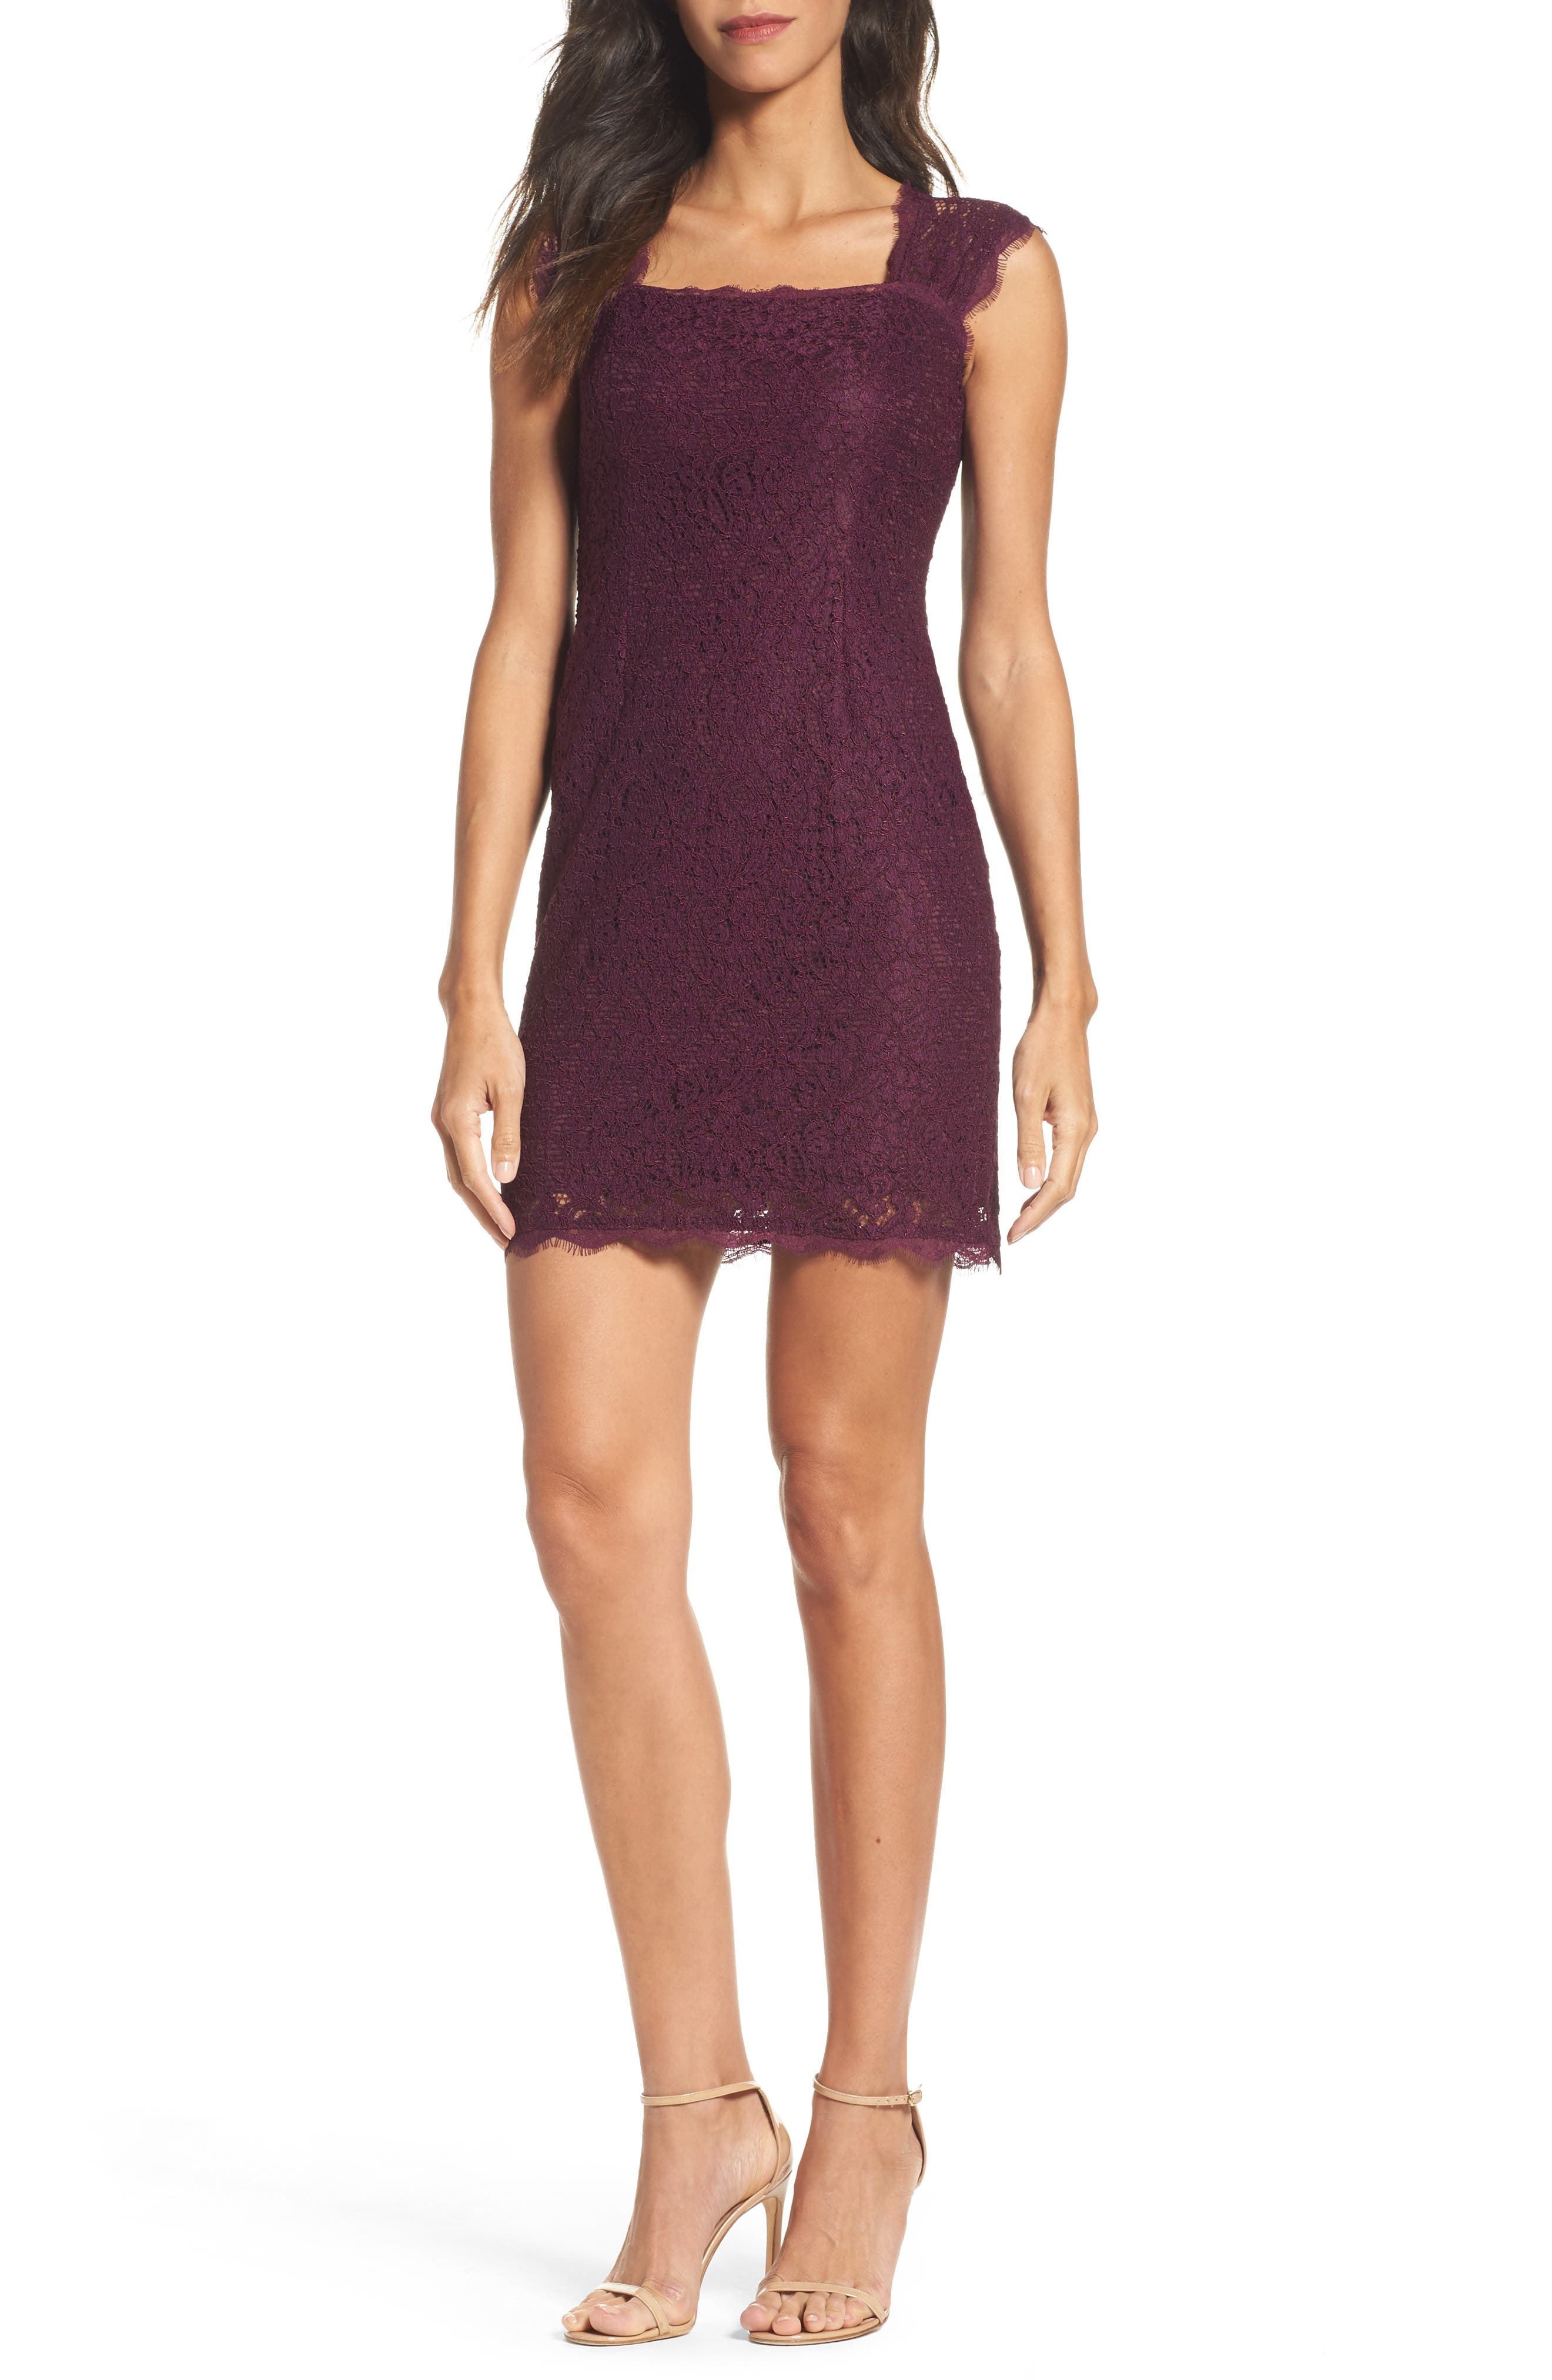 Adrianna Papell Lace Sheath Dress (Regular & Petite)